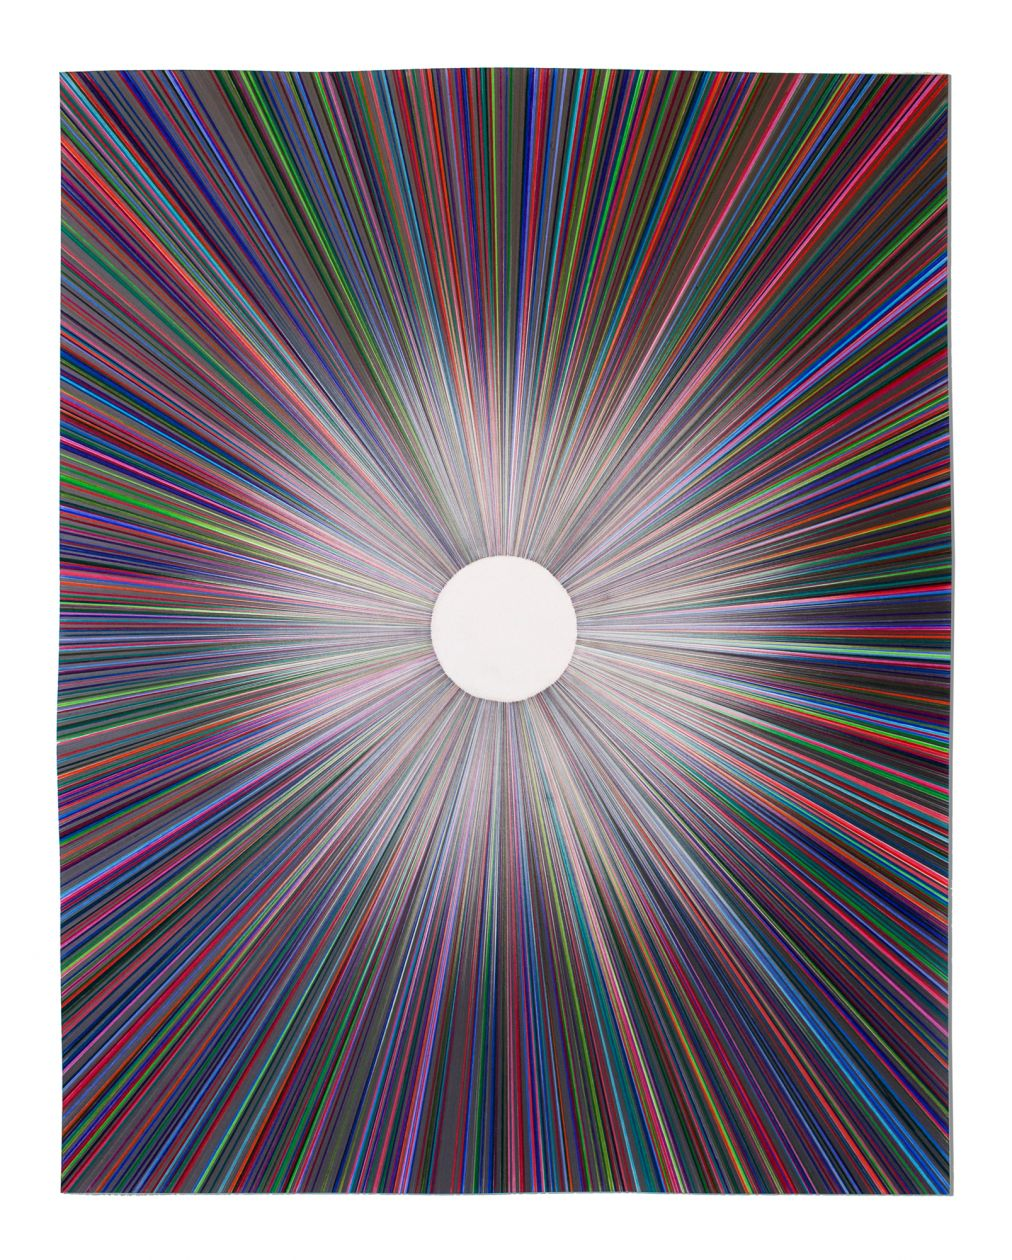 Mass in RGB (2018) by John Whitten